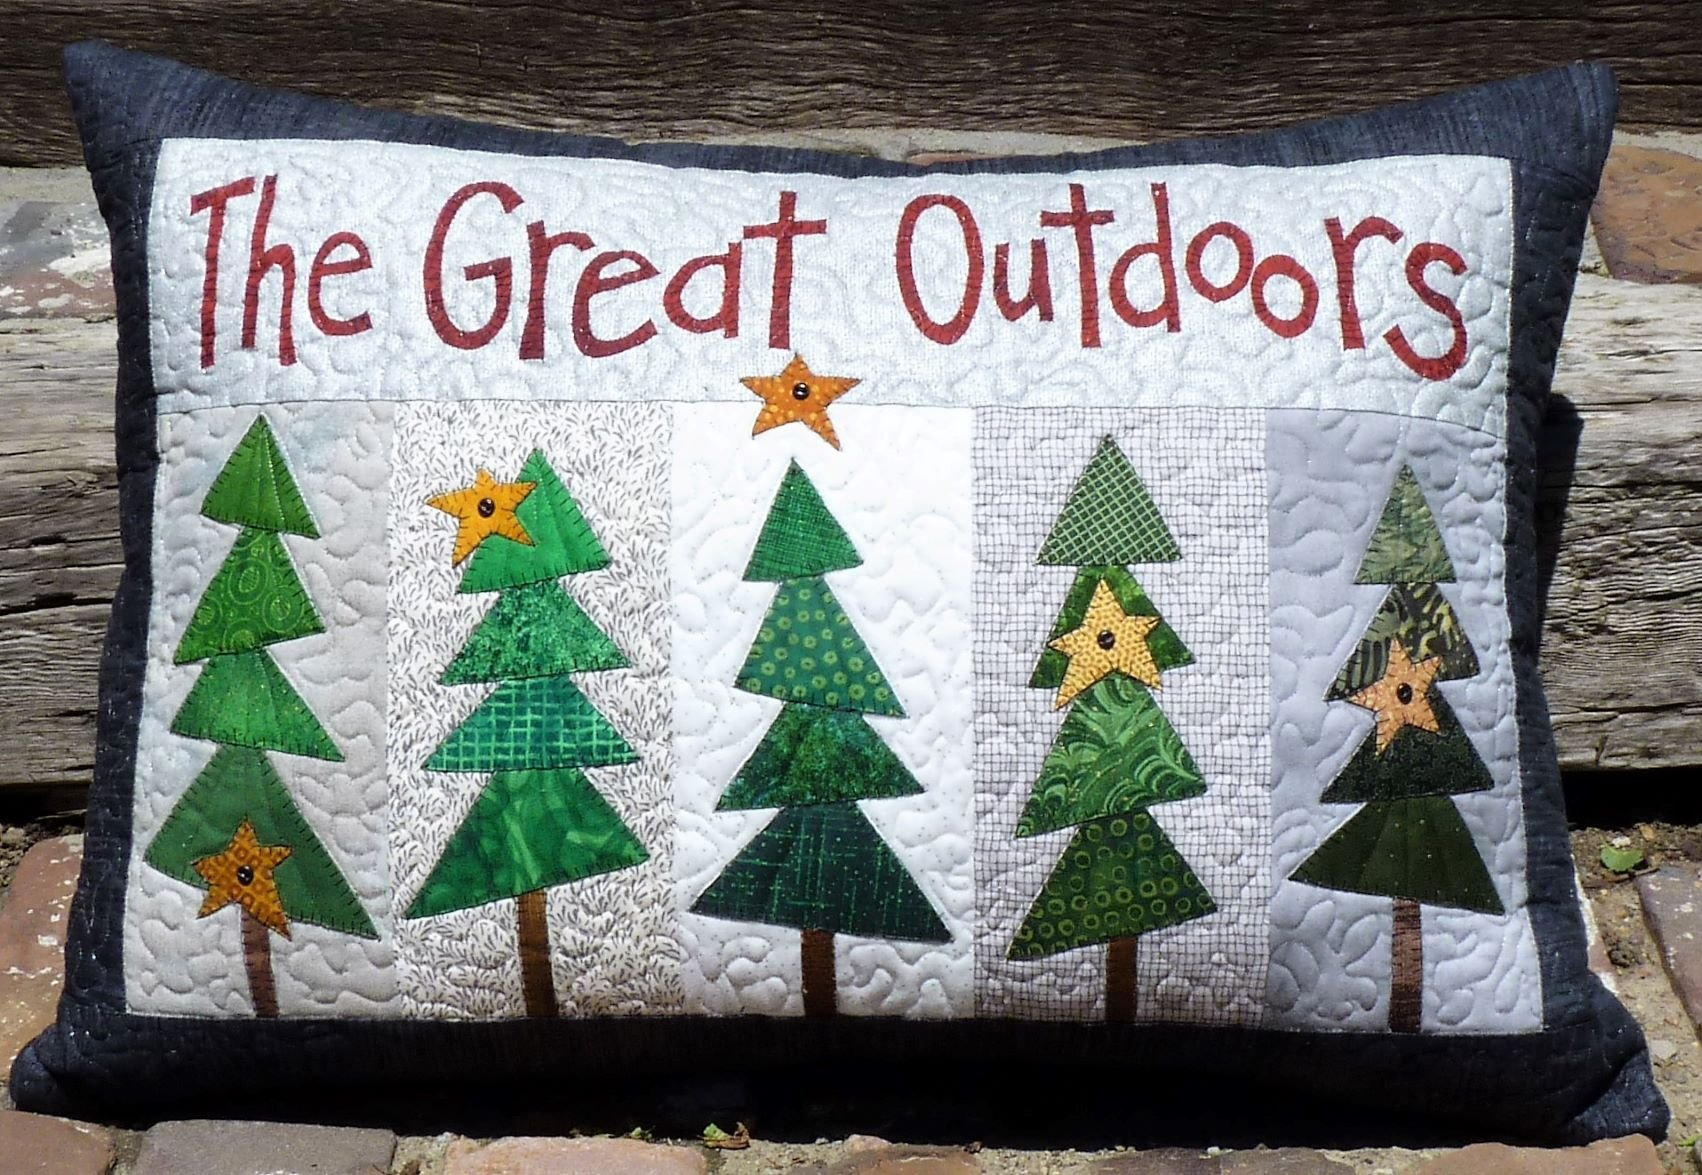 660 The Great Outdoors